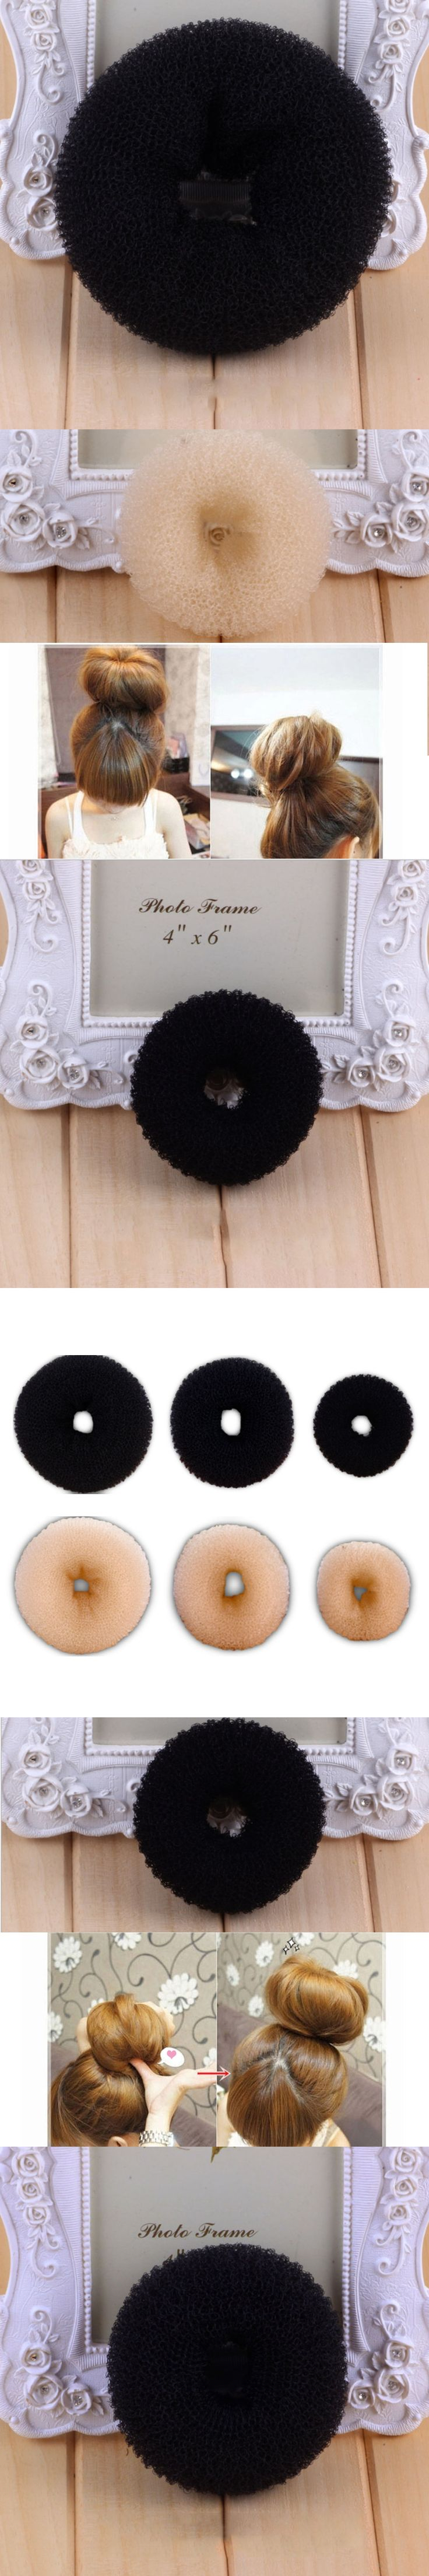 Fashion Maiden Donut Bun Maker Girl Women Round Sponge Hair Curler Curling Iron Hairstyle Styling Tools